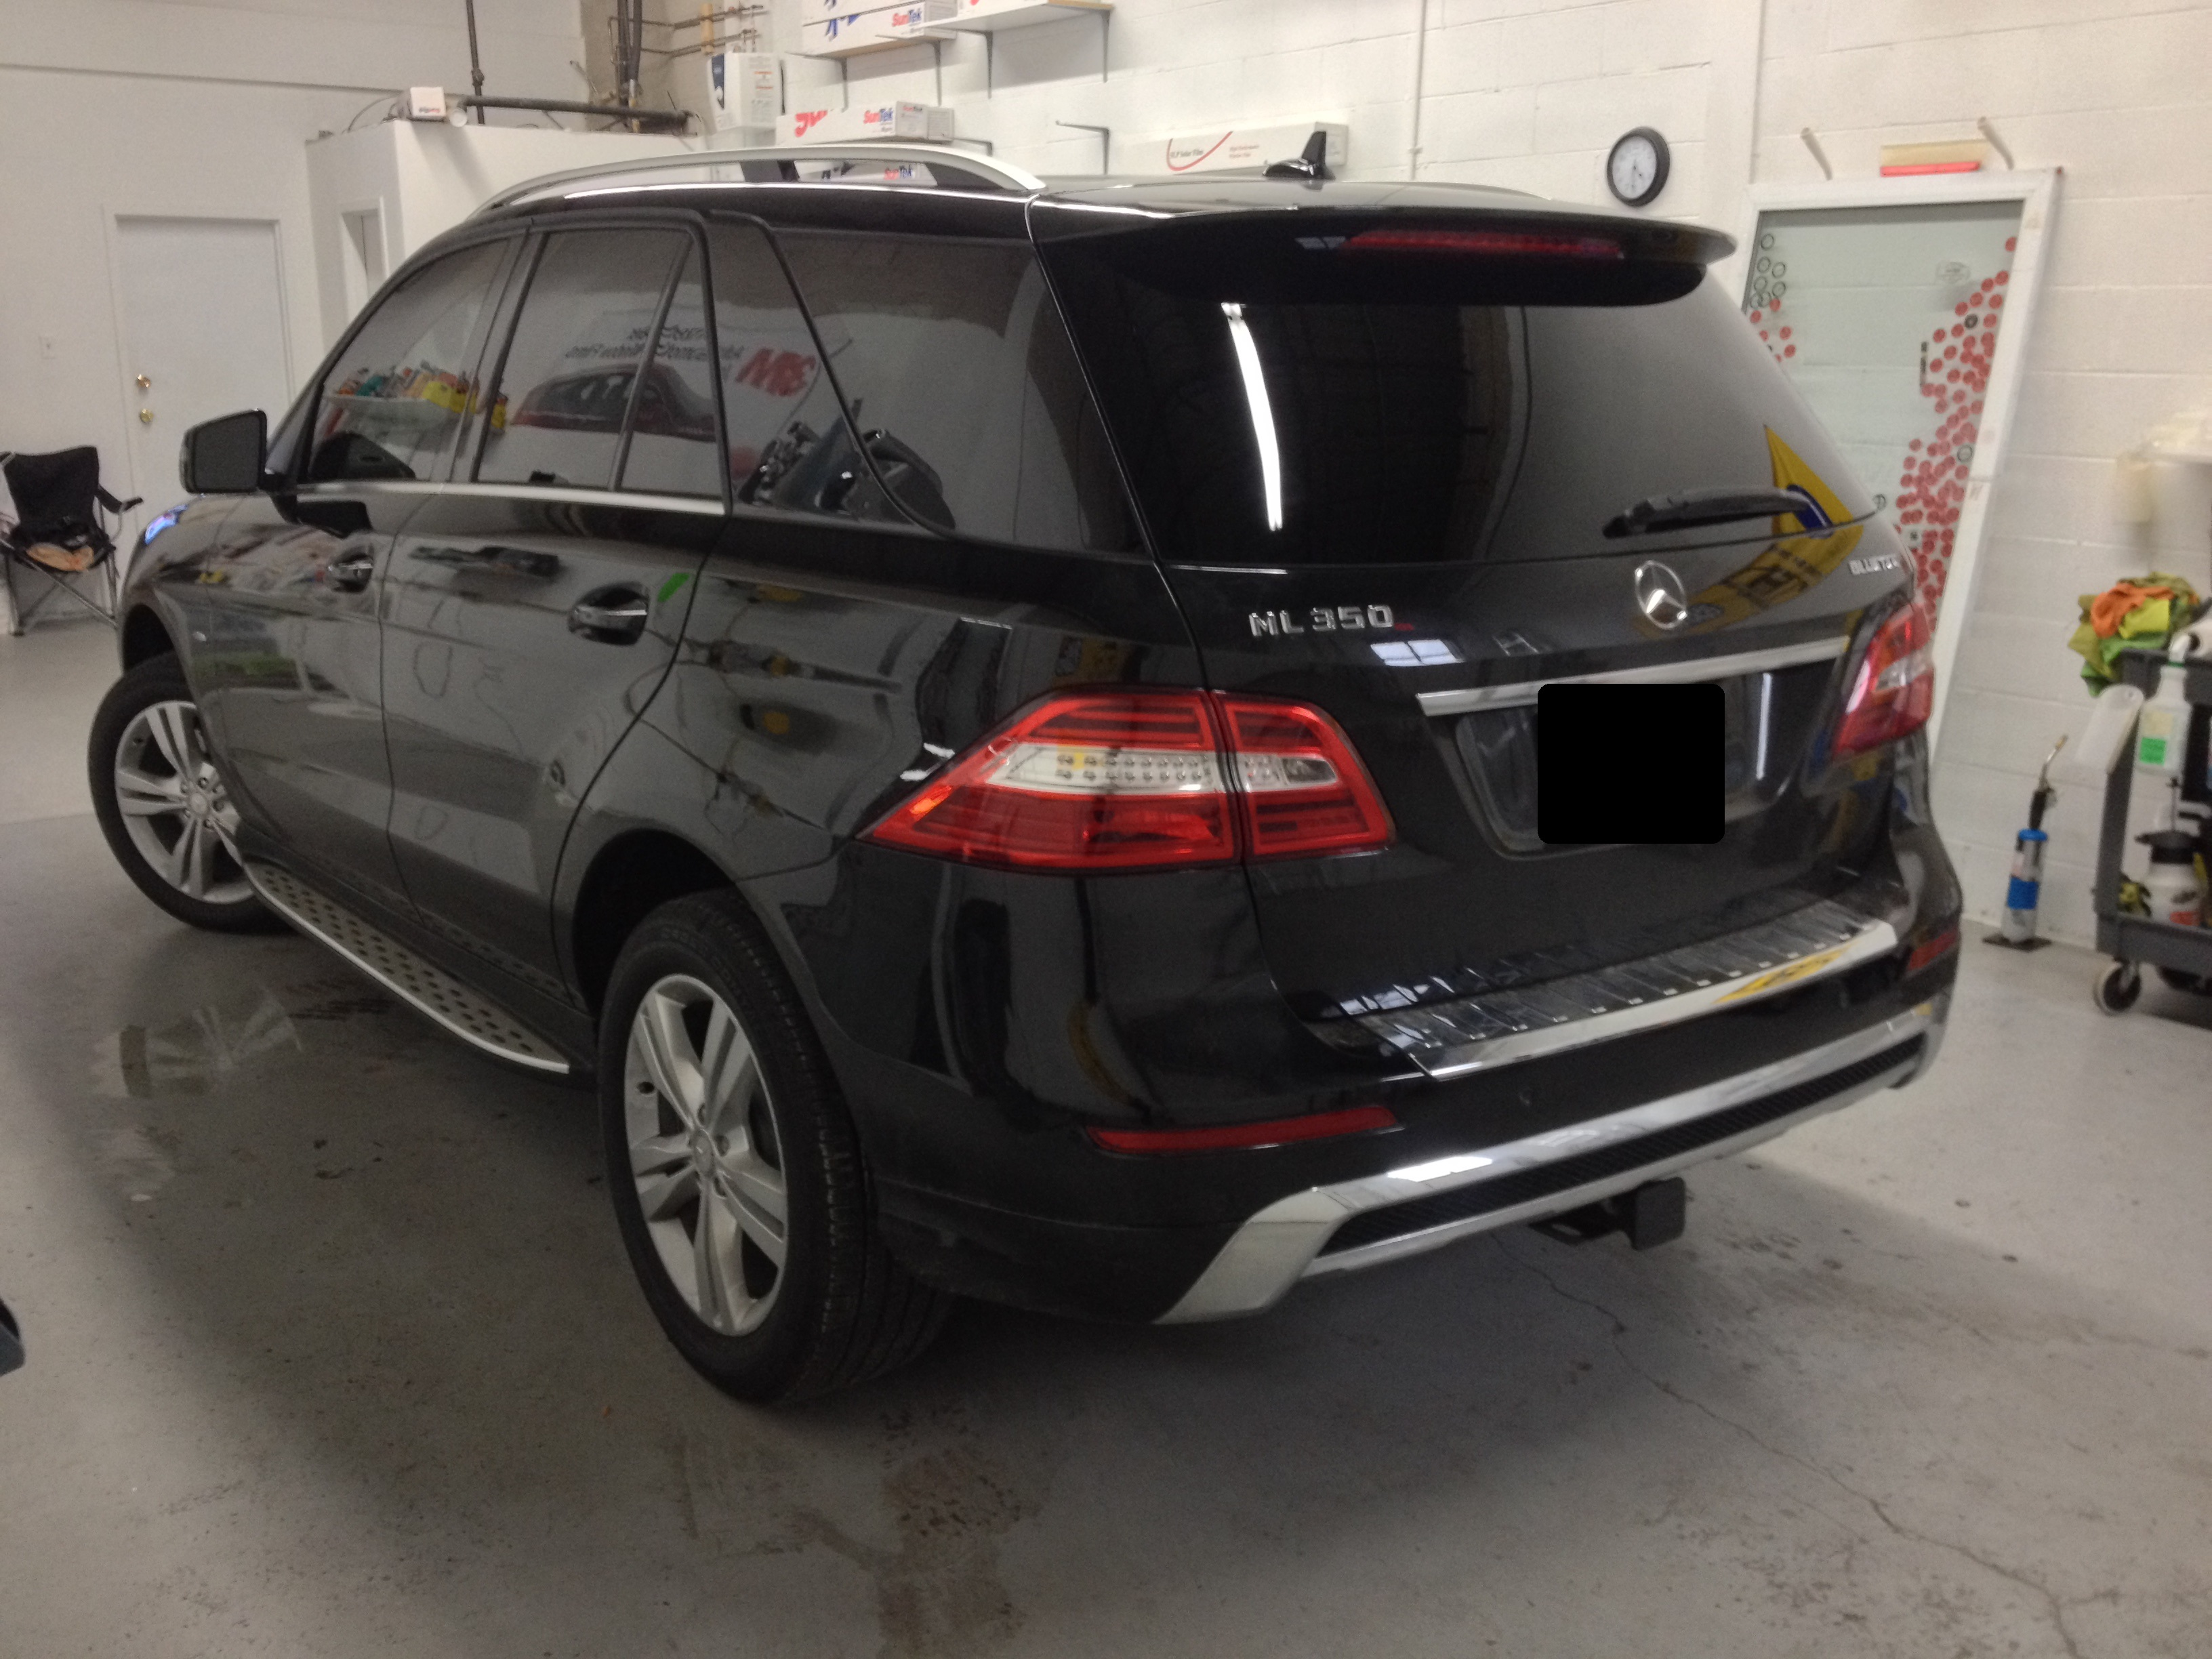 2014 MERCEDS BENZ ML 350